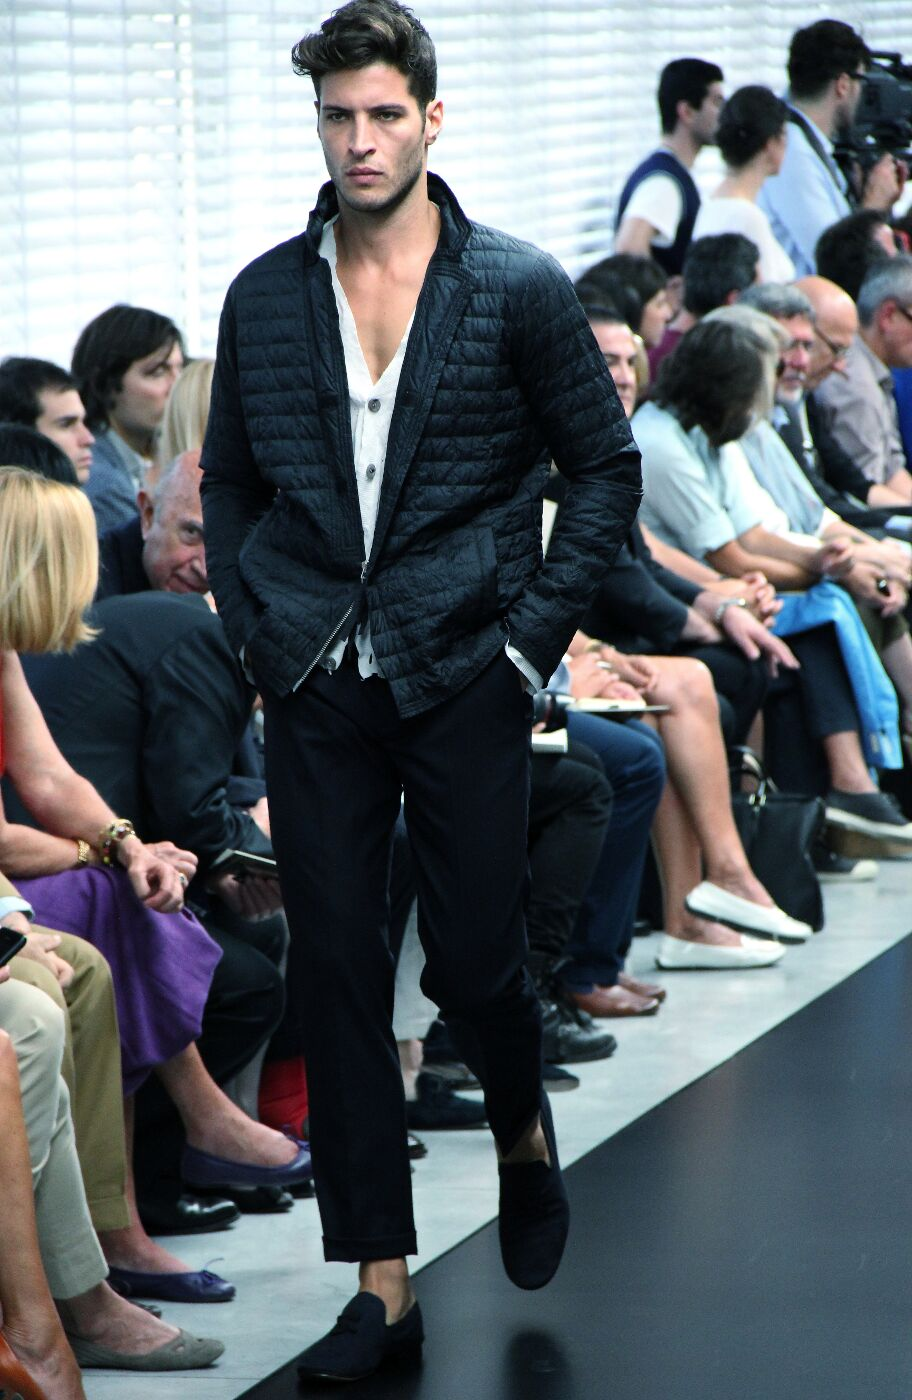 ermanno-scervino-spring-summer-2012-fashion-show-catwalk